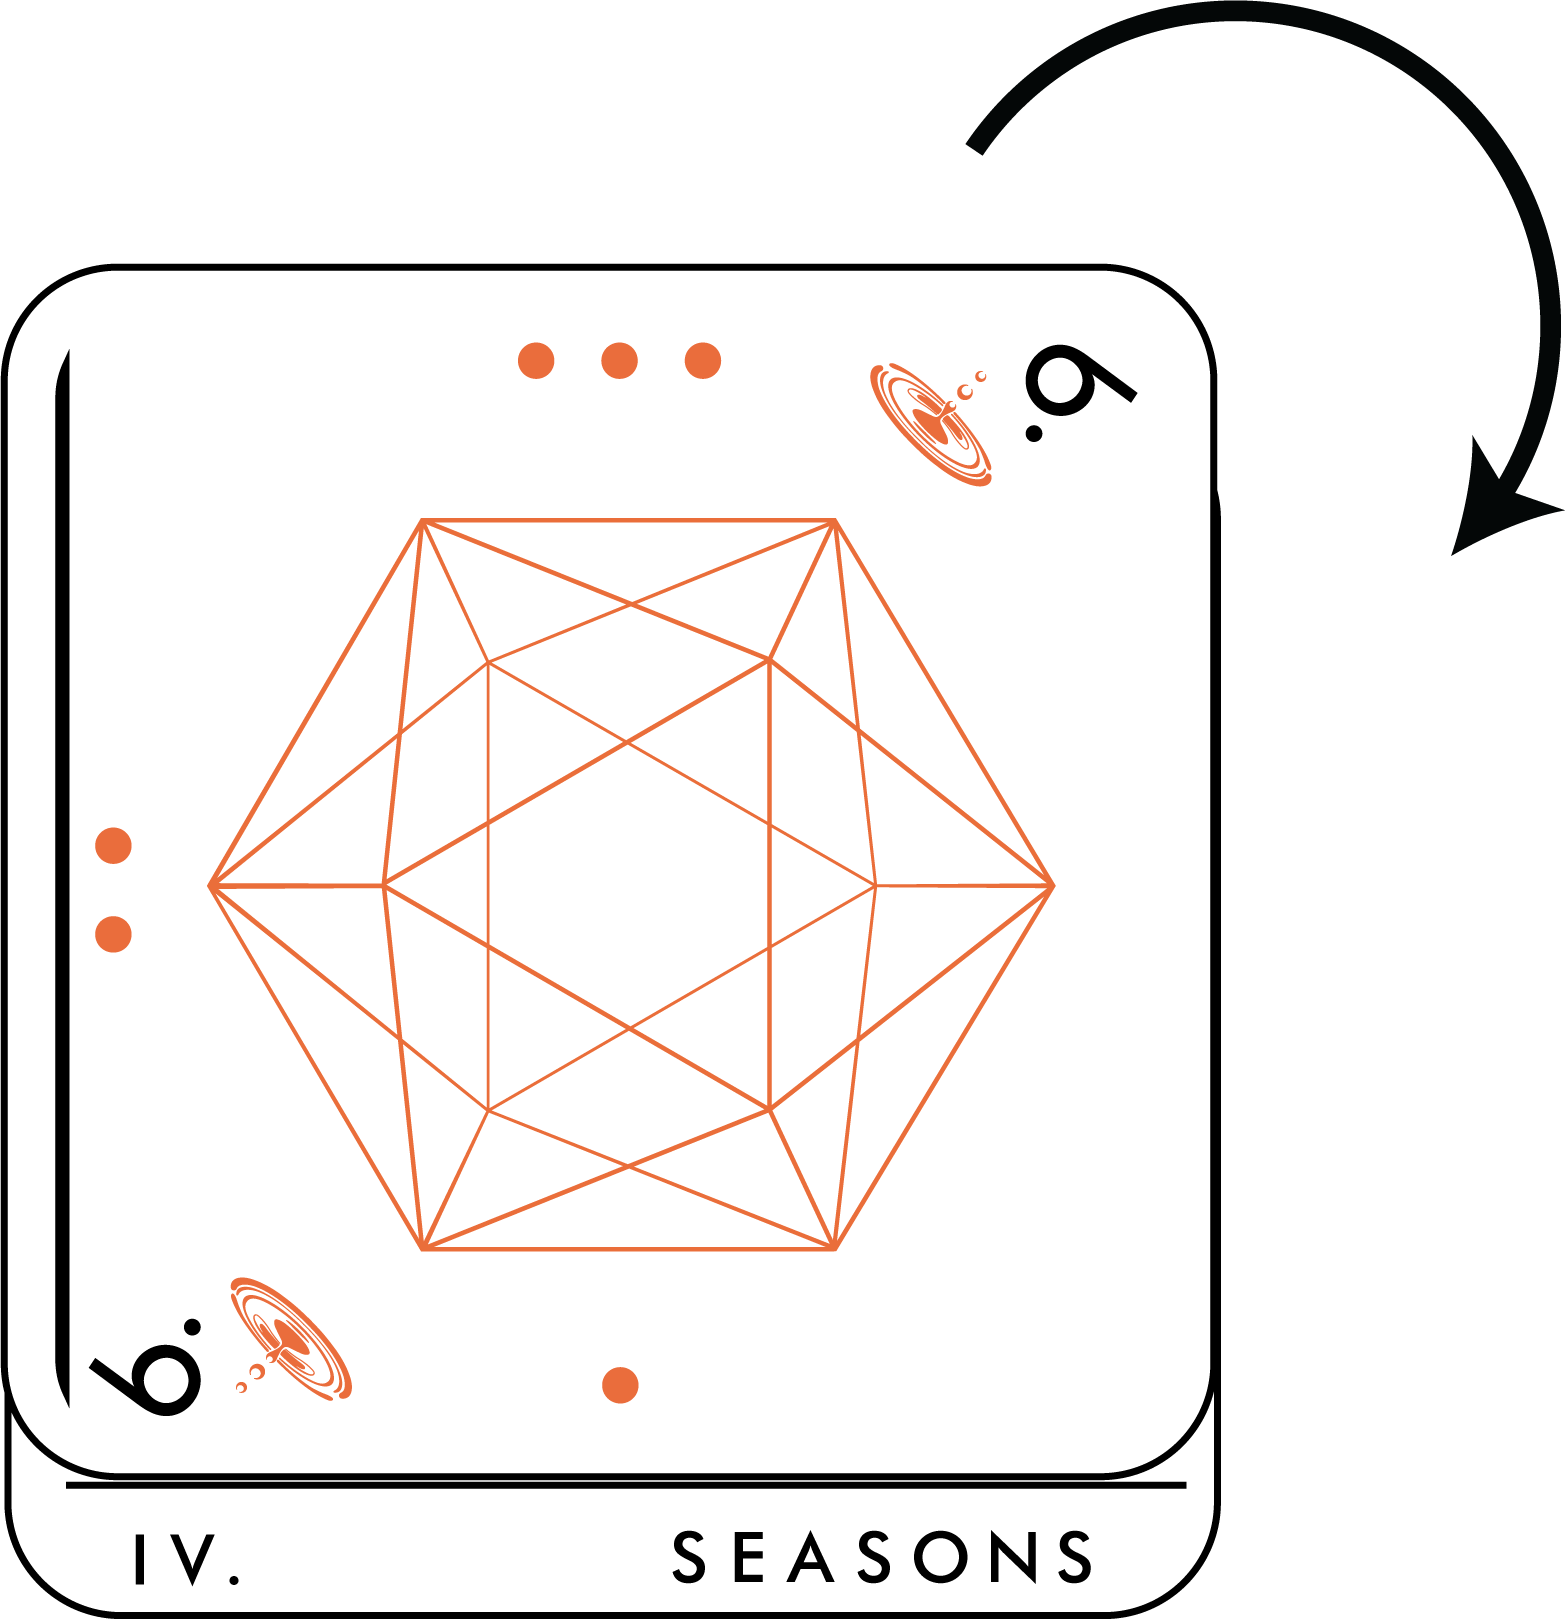 This card may now be rotated as a turn action. The title of IV. Seasons should remain oriented towards the player who controls the card.